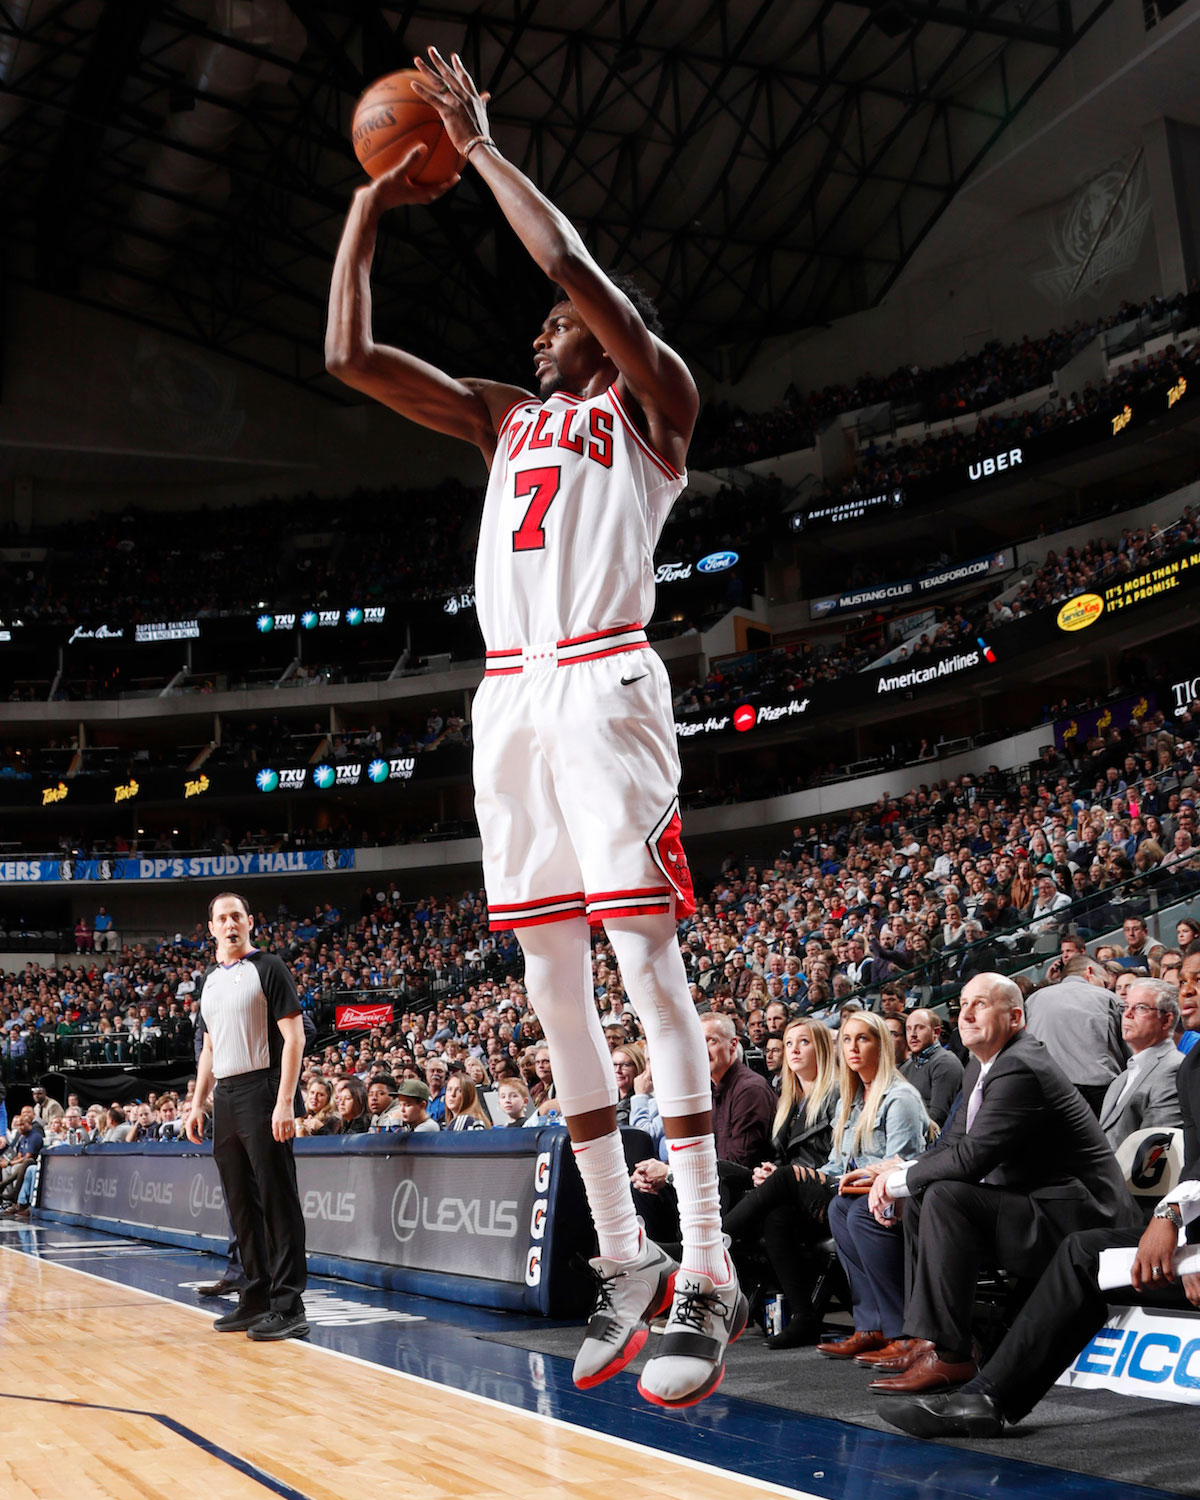 Justin Holiday shoots the ball.